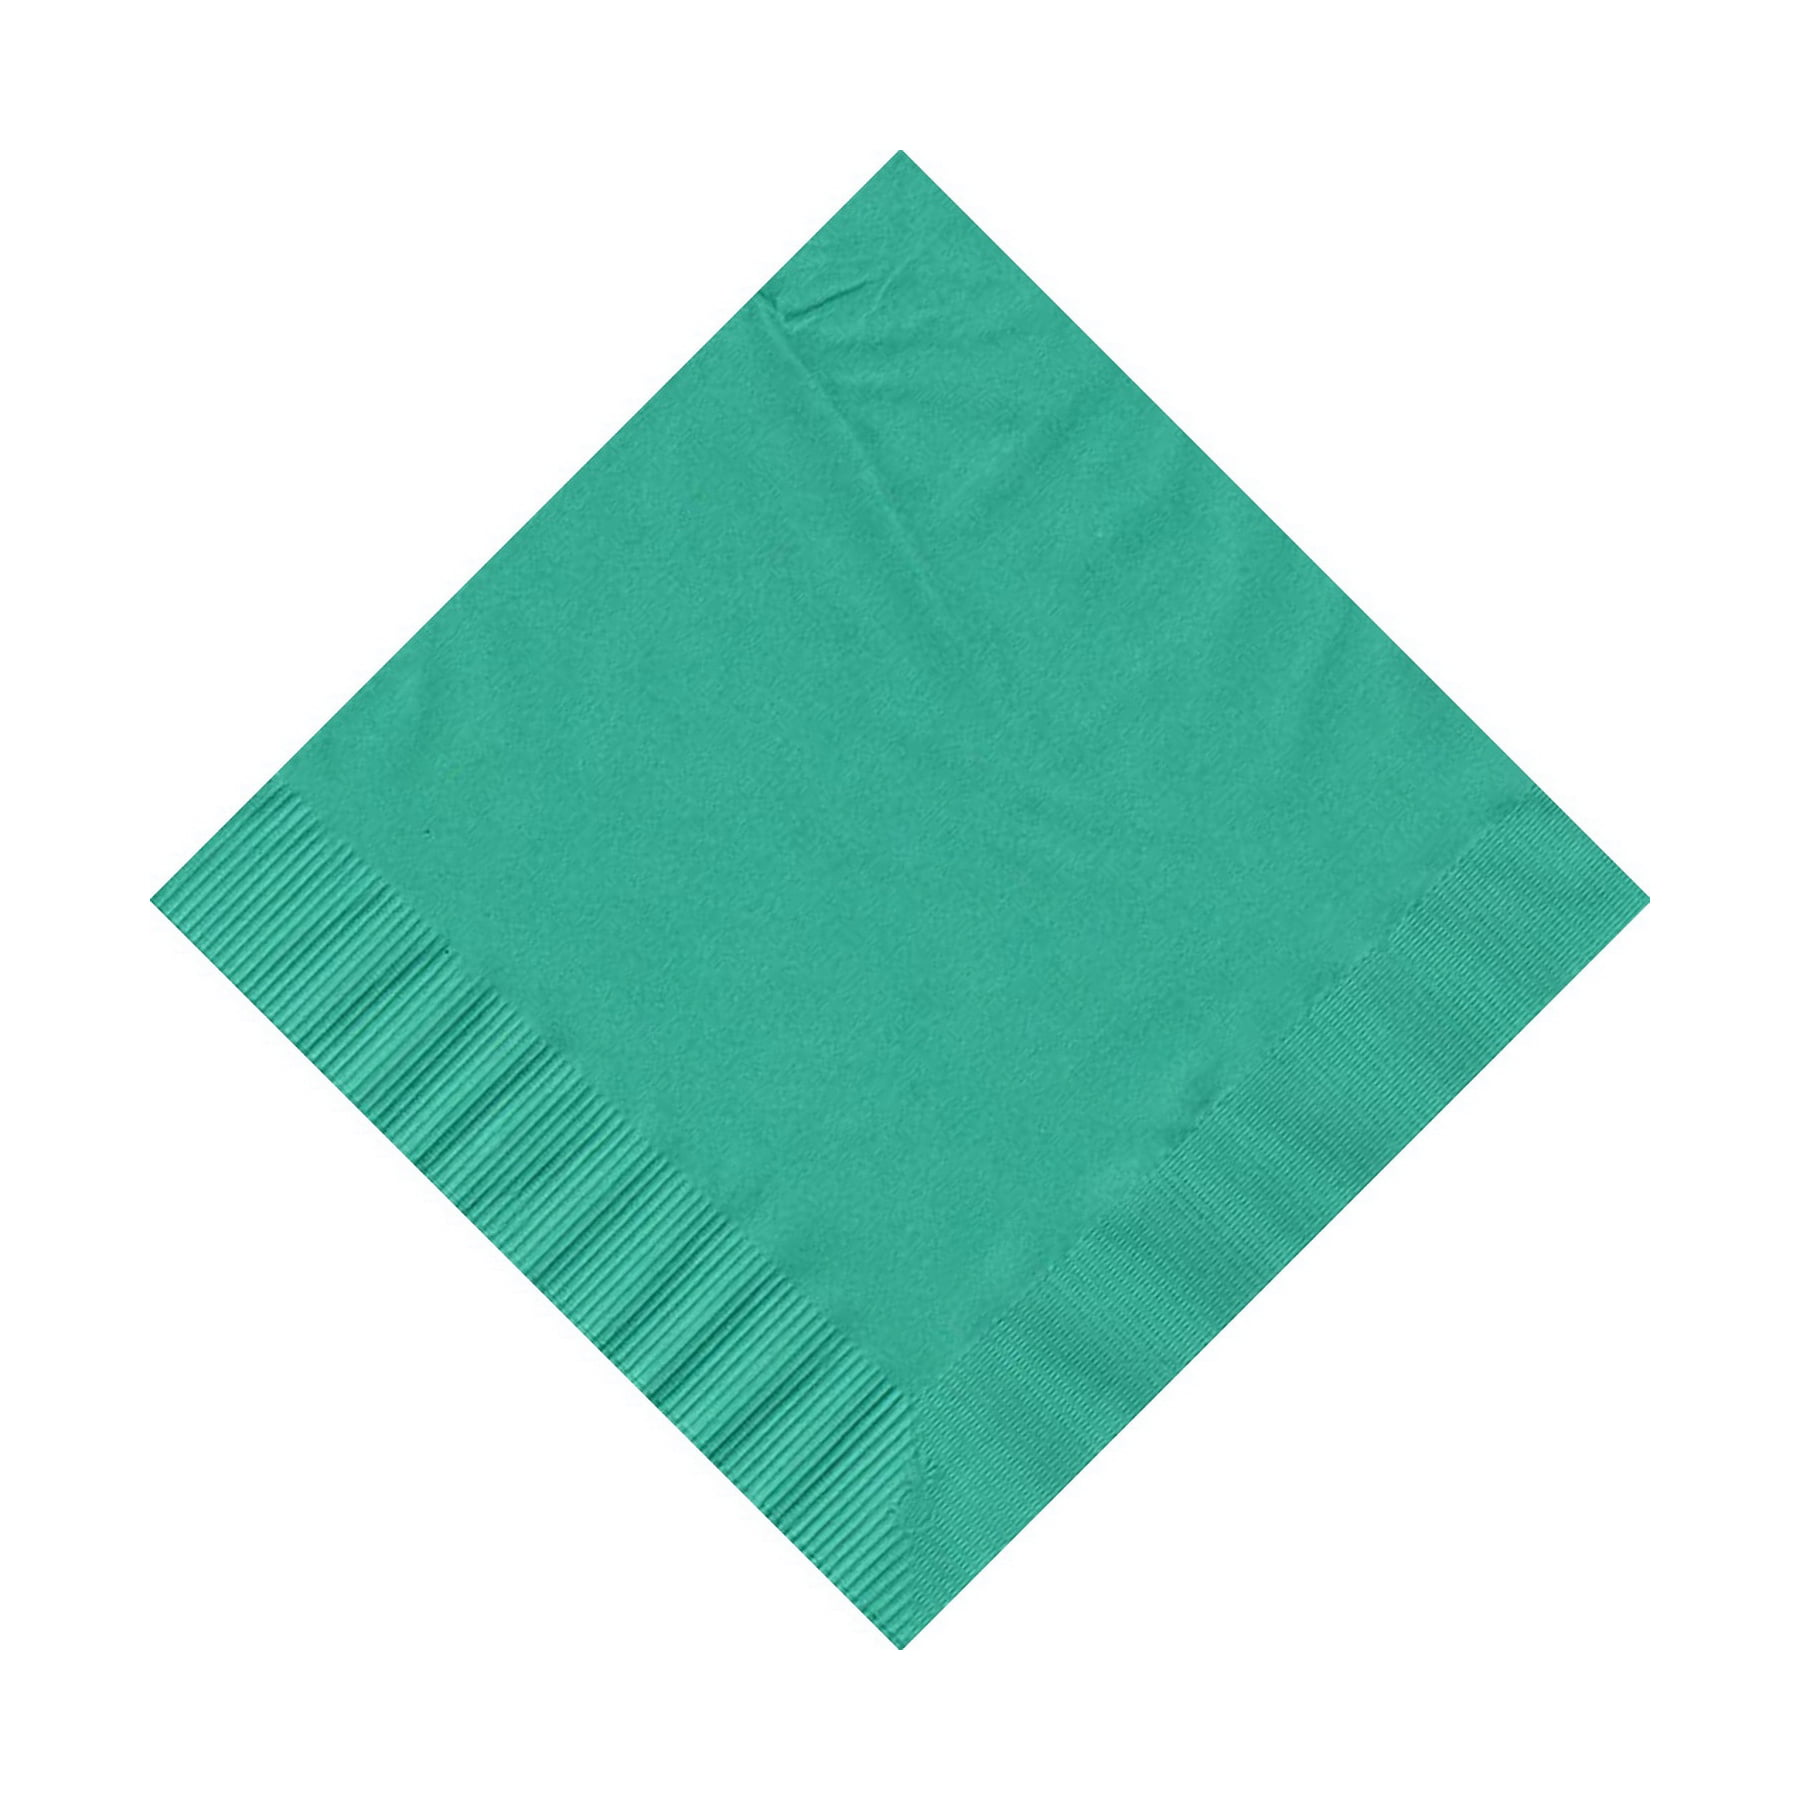 50 Plain Solid Colors Beverage Cocktail Napkins Paper Teal by CREATIVE CONVERTING